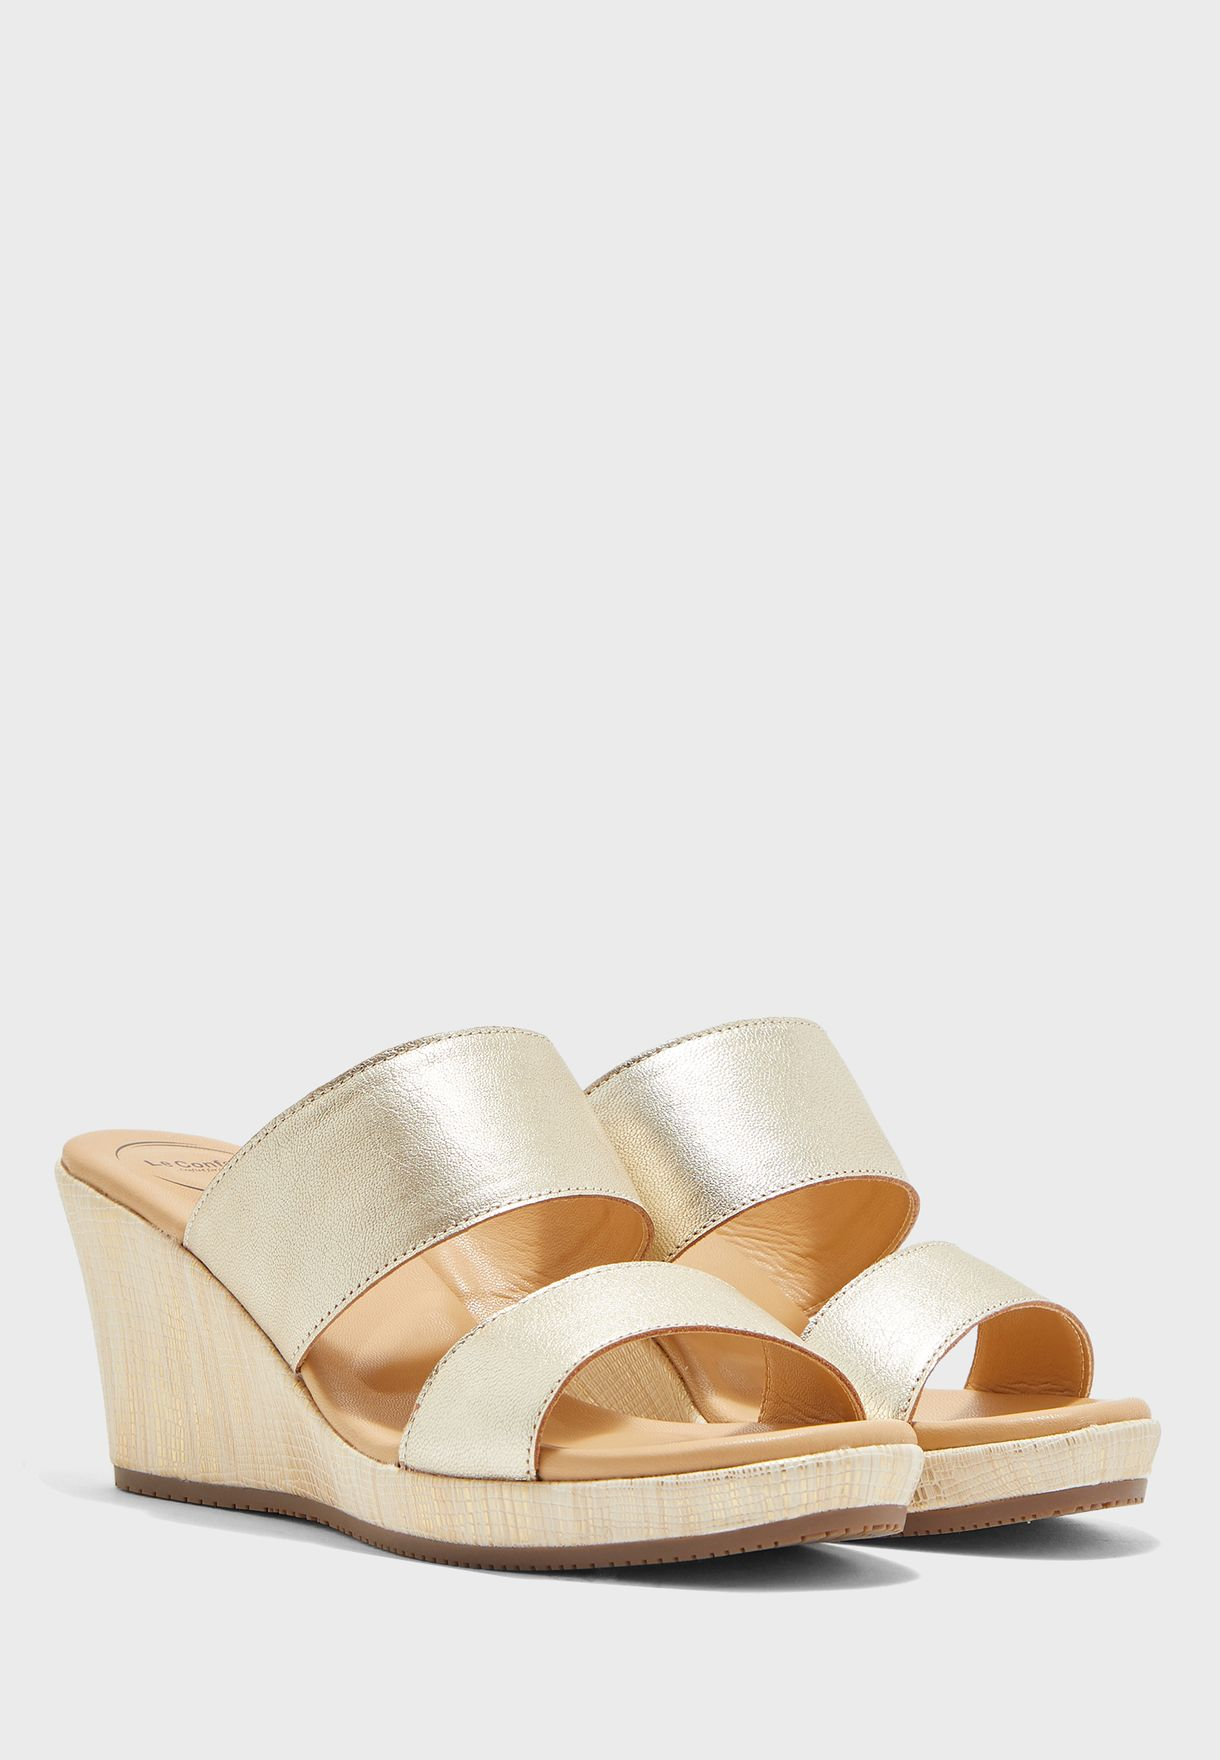 Le Confort Two Strap Wedge Sandal-gold - Brand Shoes